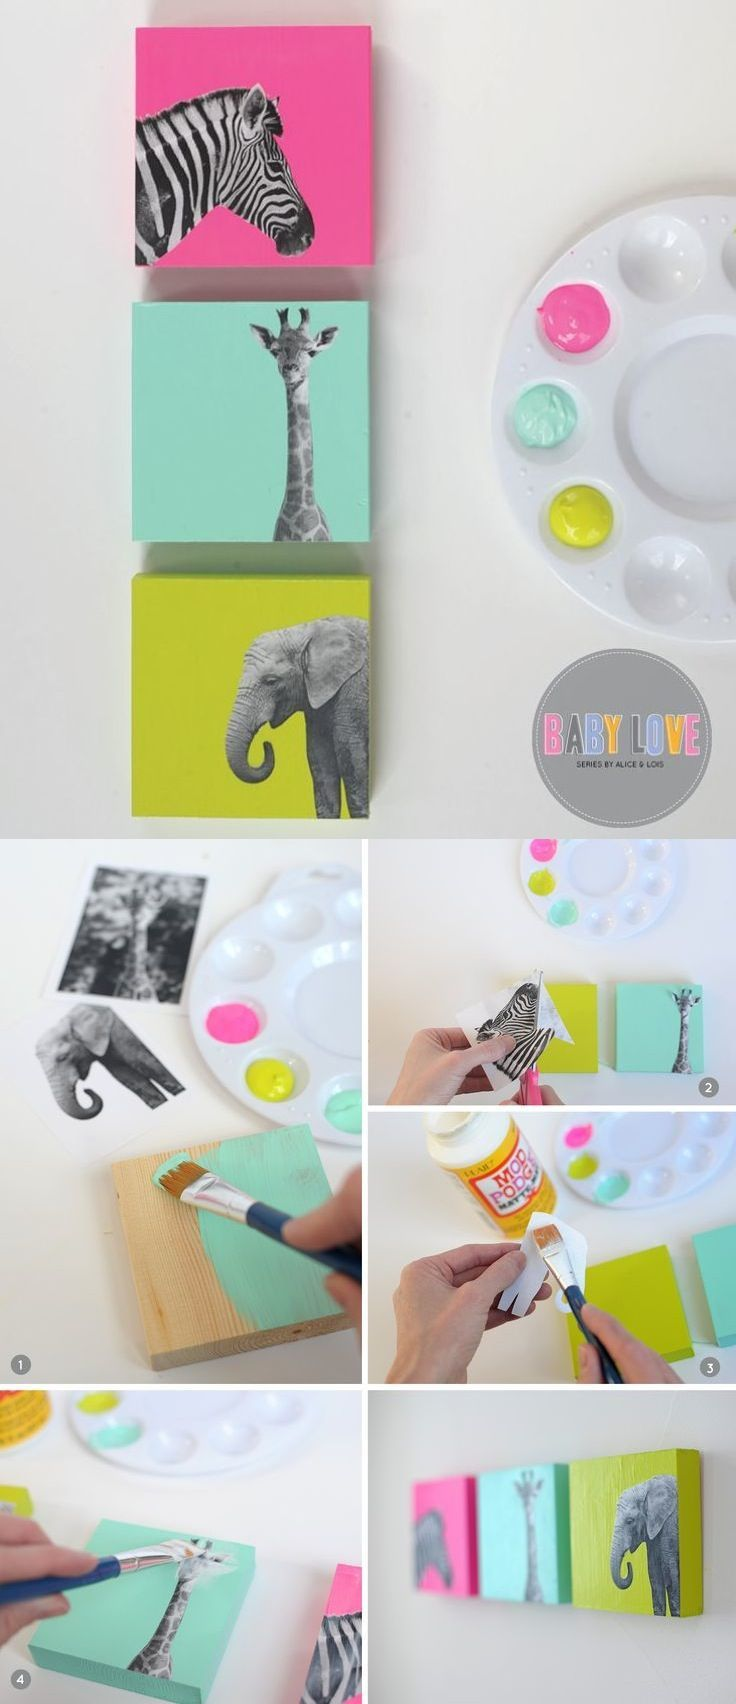 15 Cutest Diy Projects You Must Finish Proyectos De Bricolaje